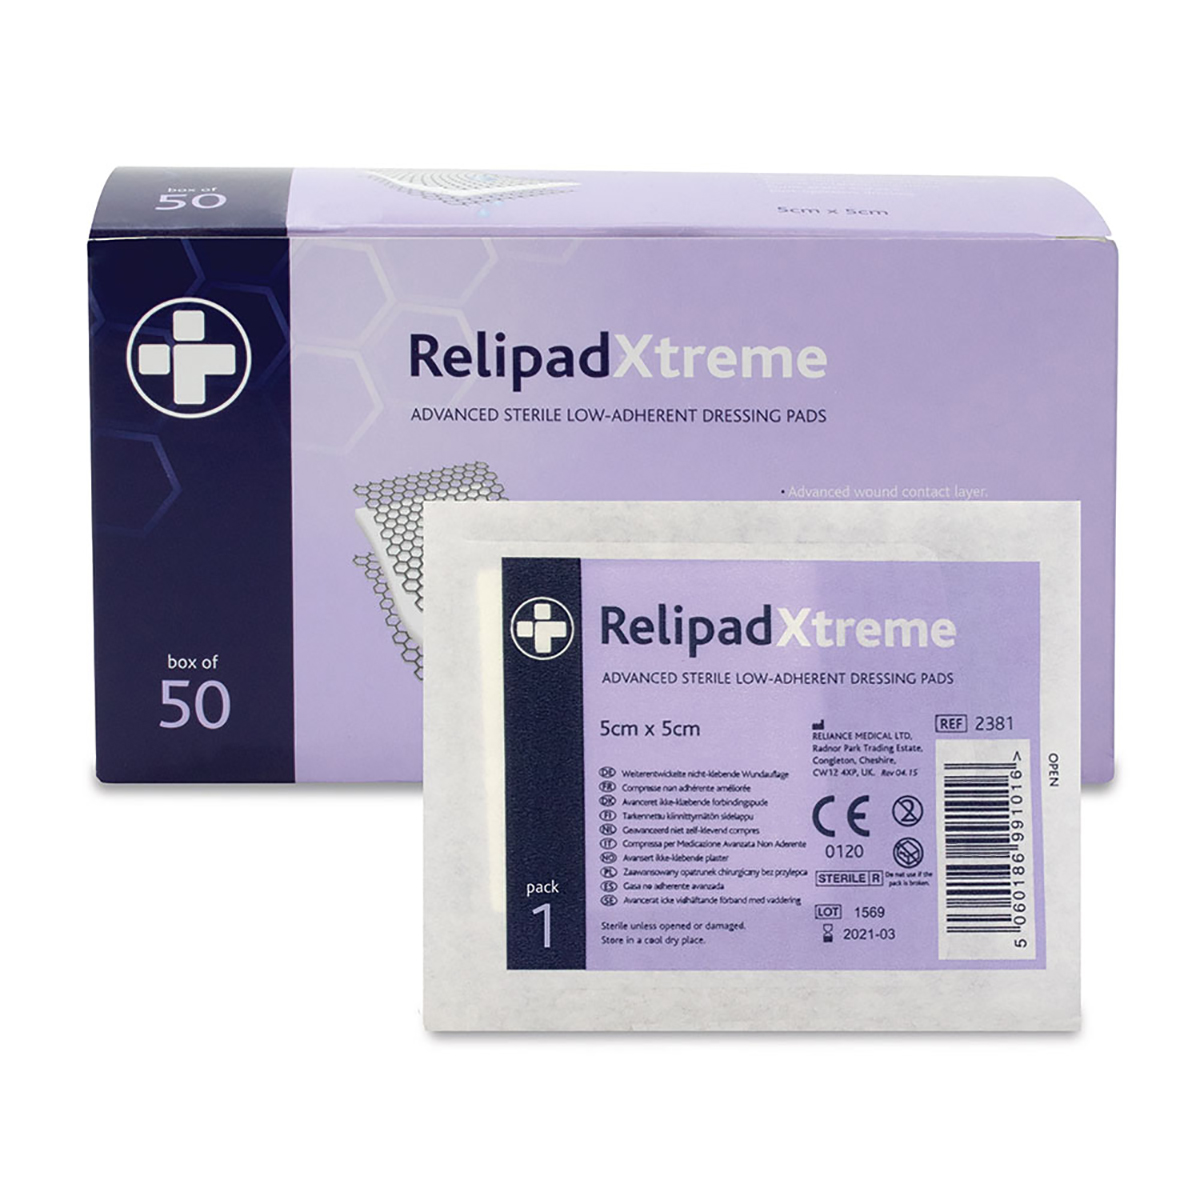 Box of 50 5cm x 5cm Relipadxtreme Non-Adherent Dressing Pads